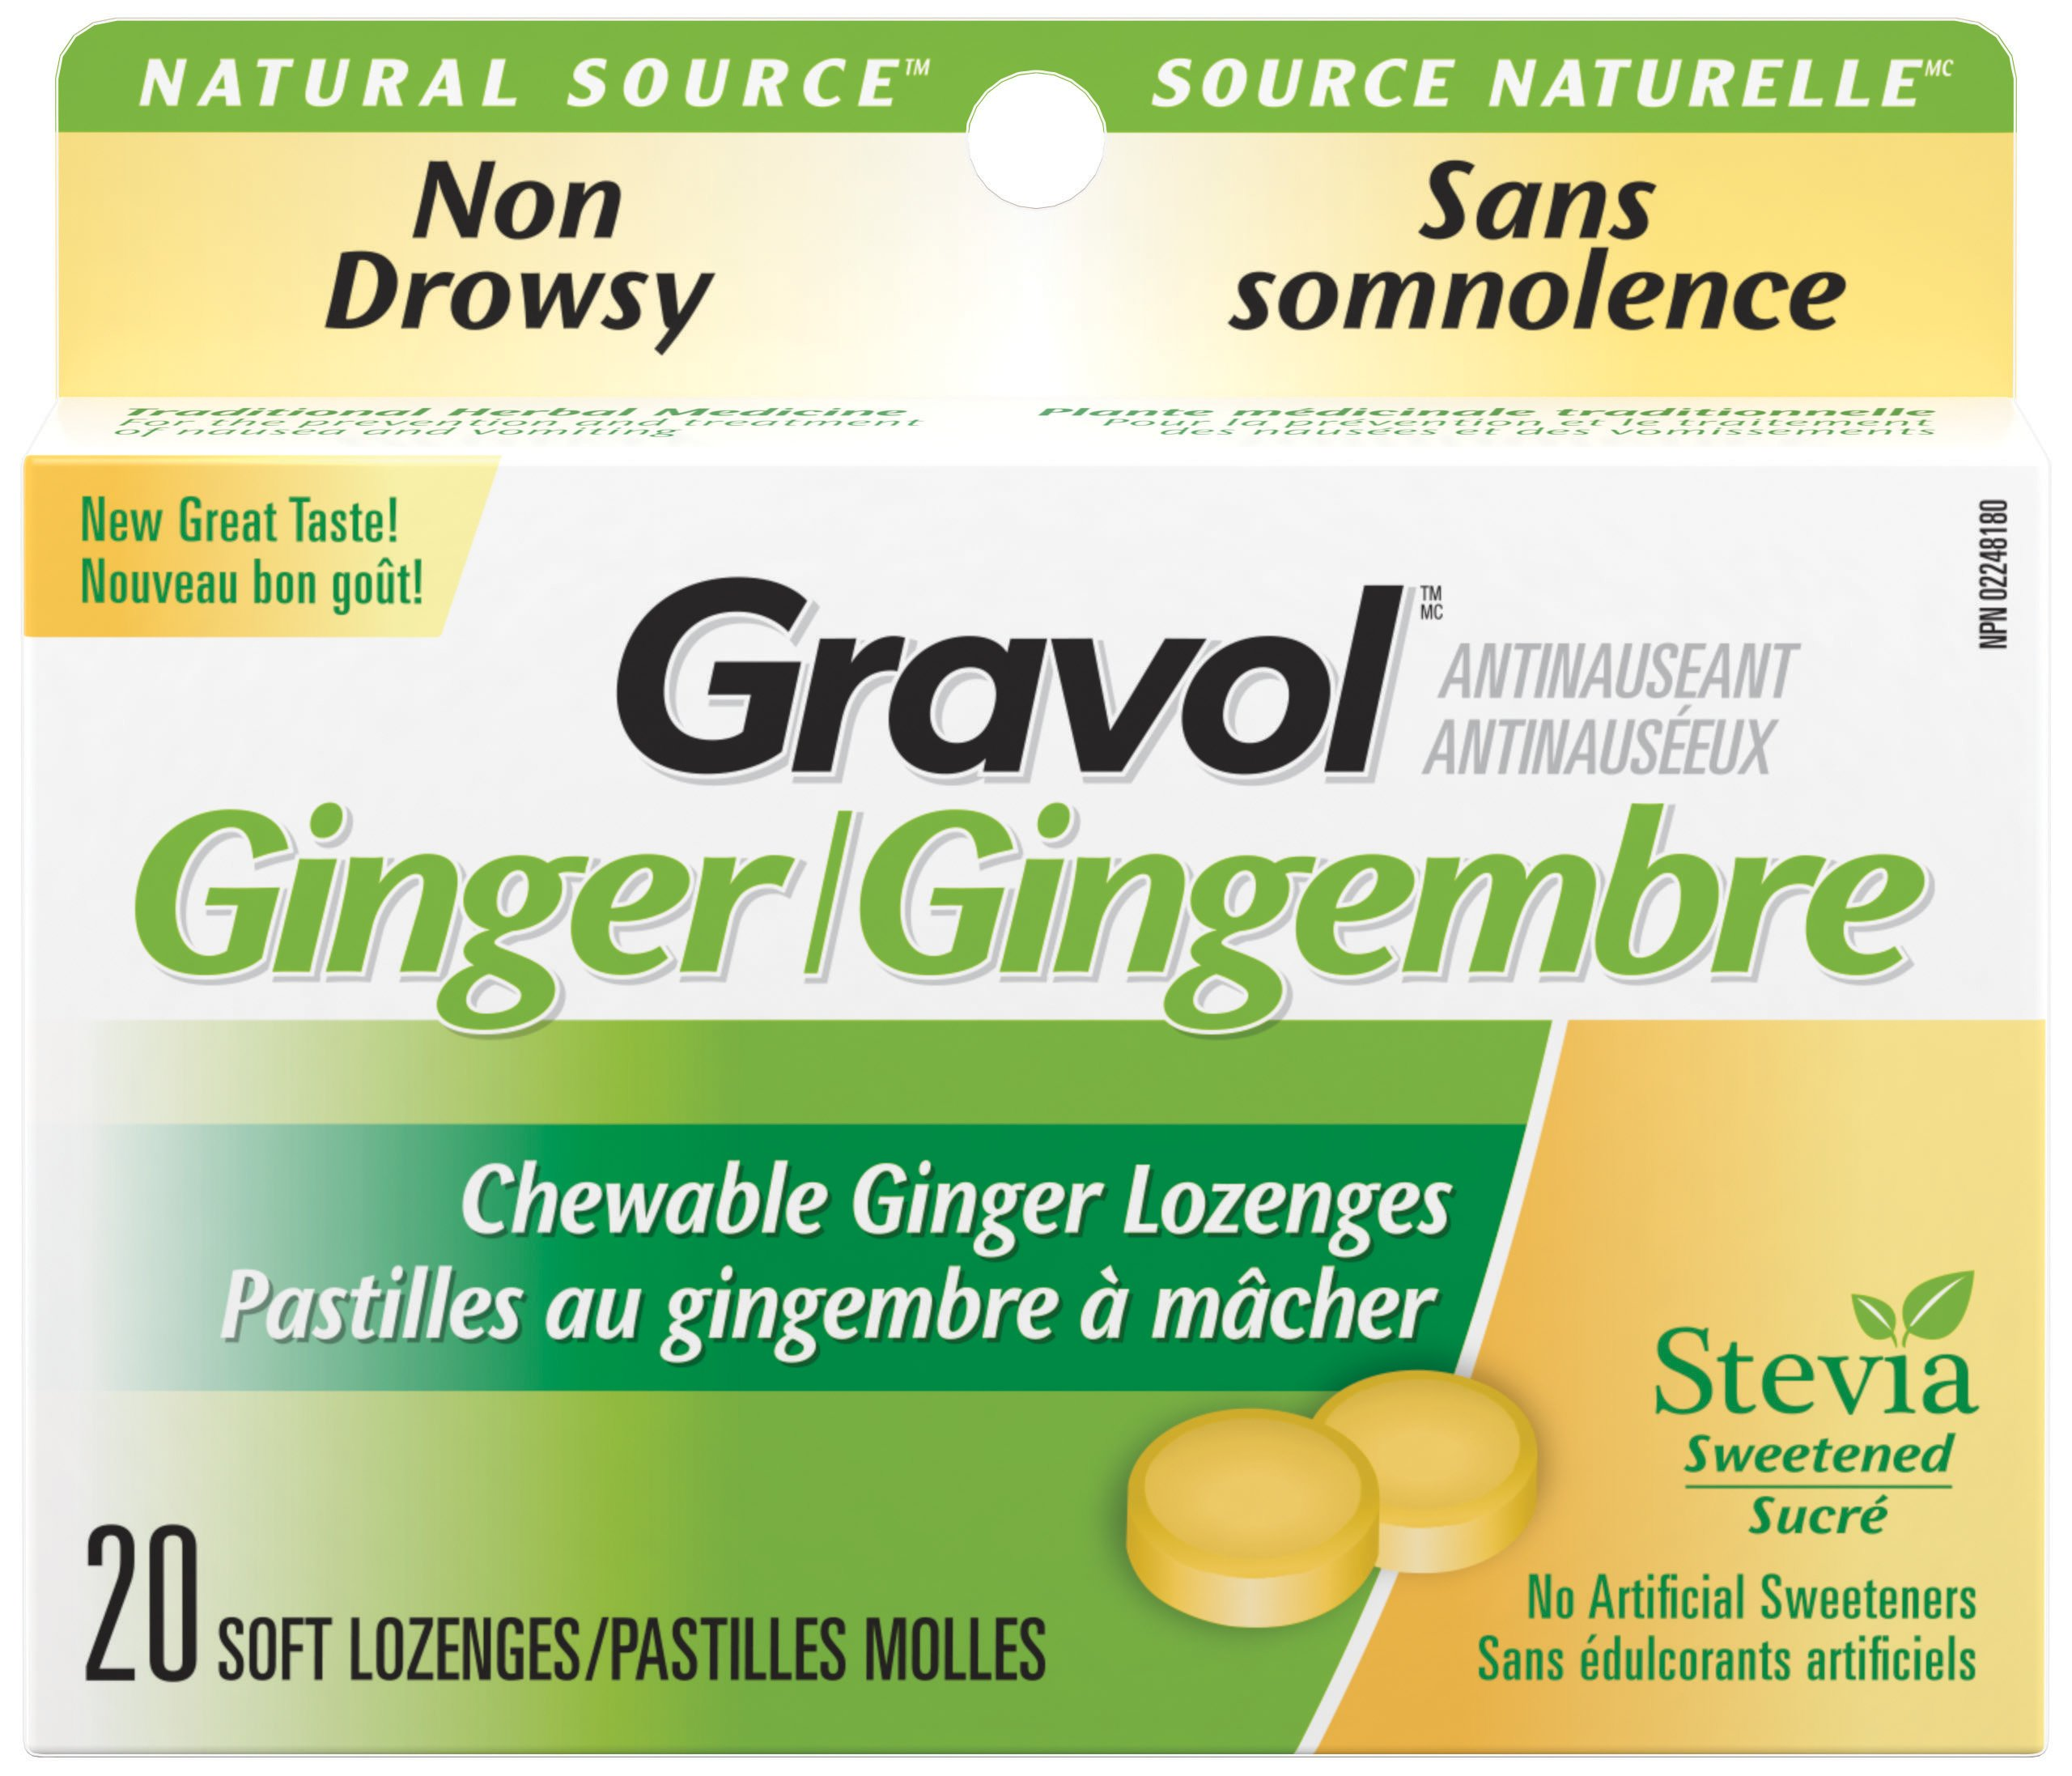 Certified Organic Ginger GRAVOL (20 Chewable Lozenges)500mg Antinauseant for NAUSEA, VOMITING & MOTION SICKNESS by Gravol